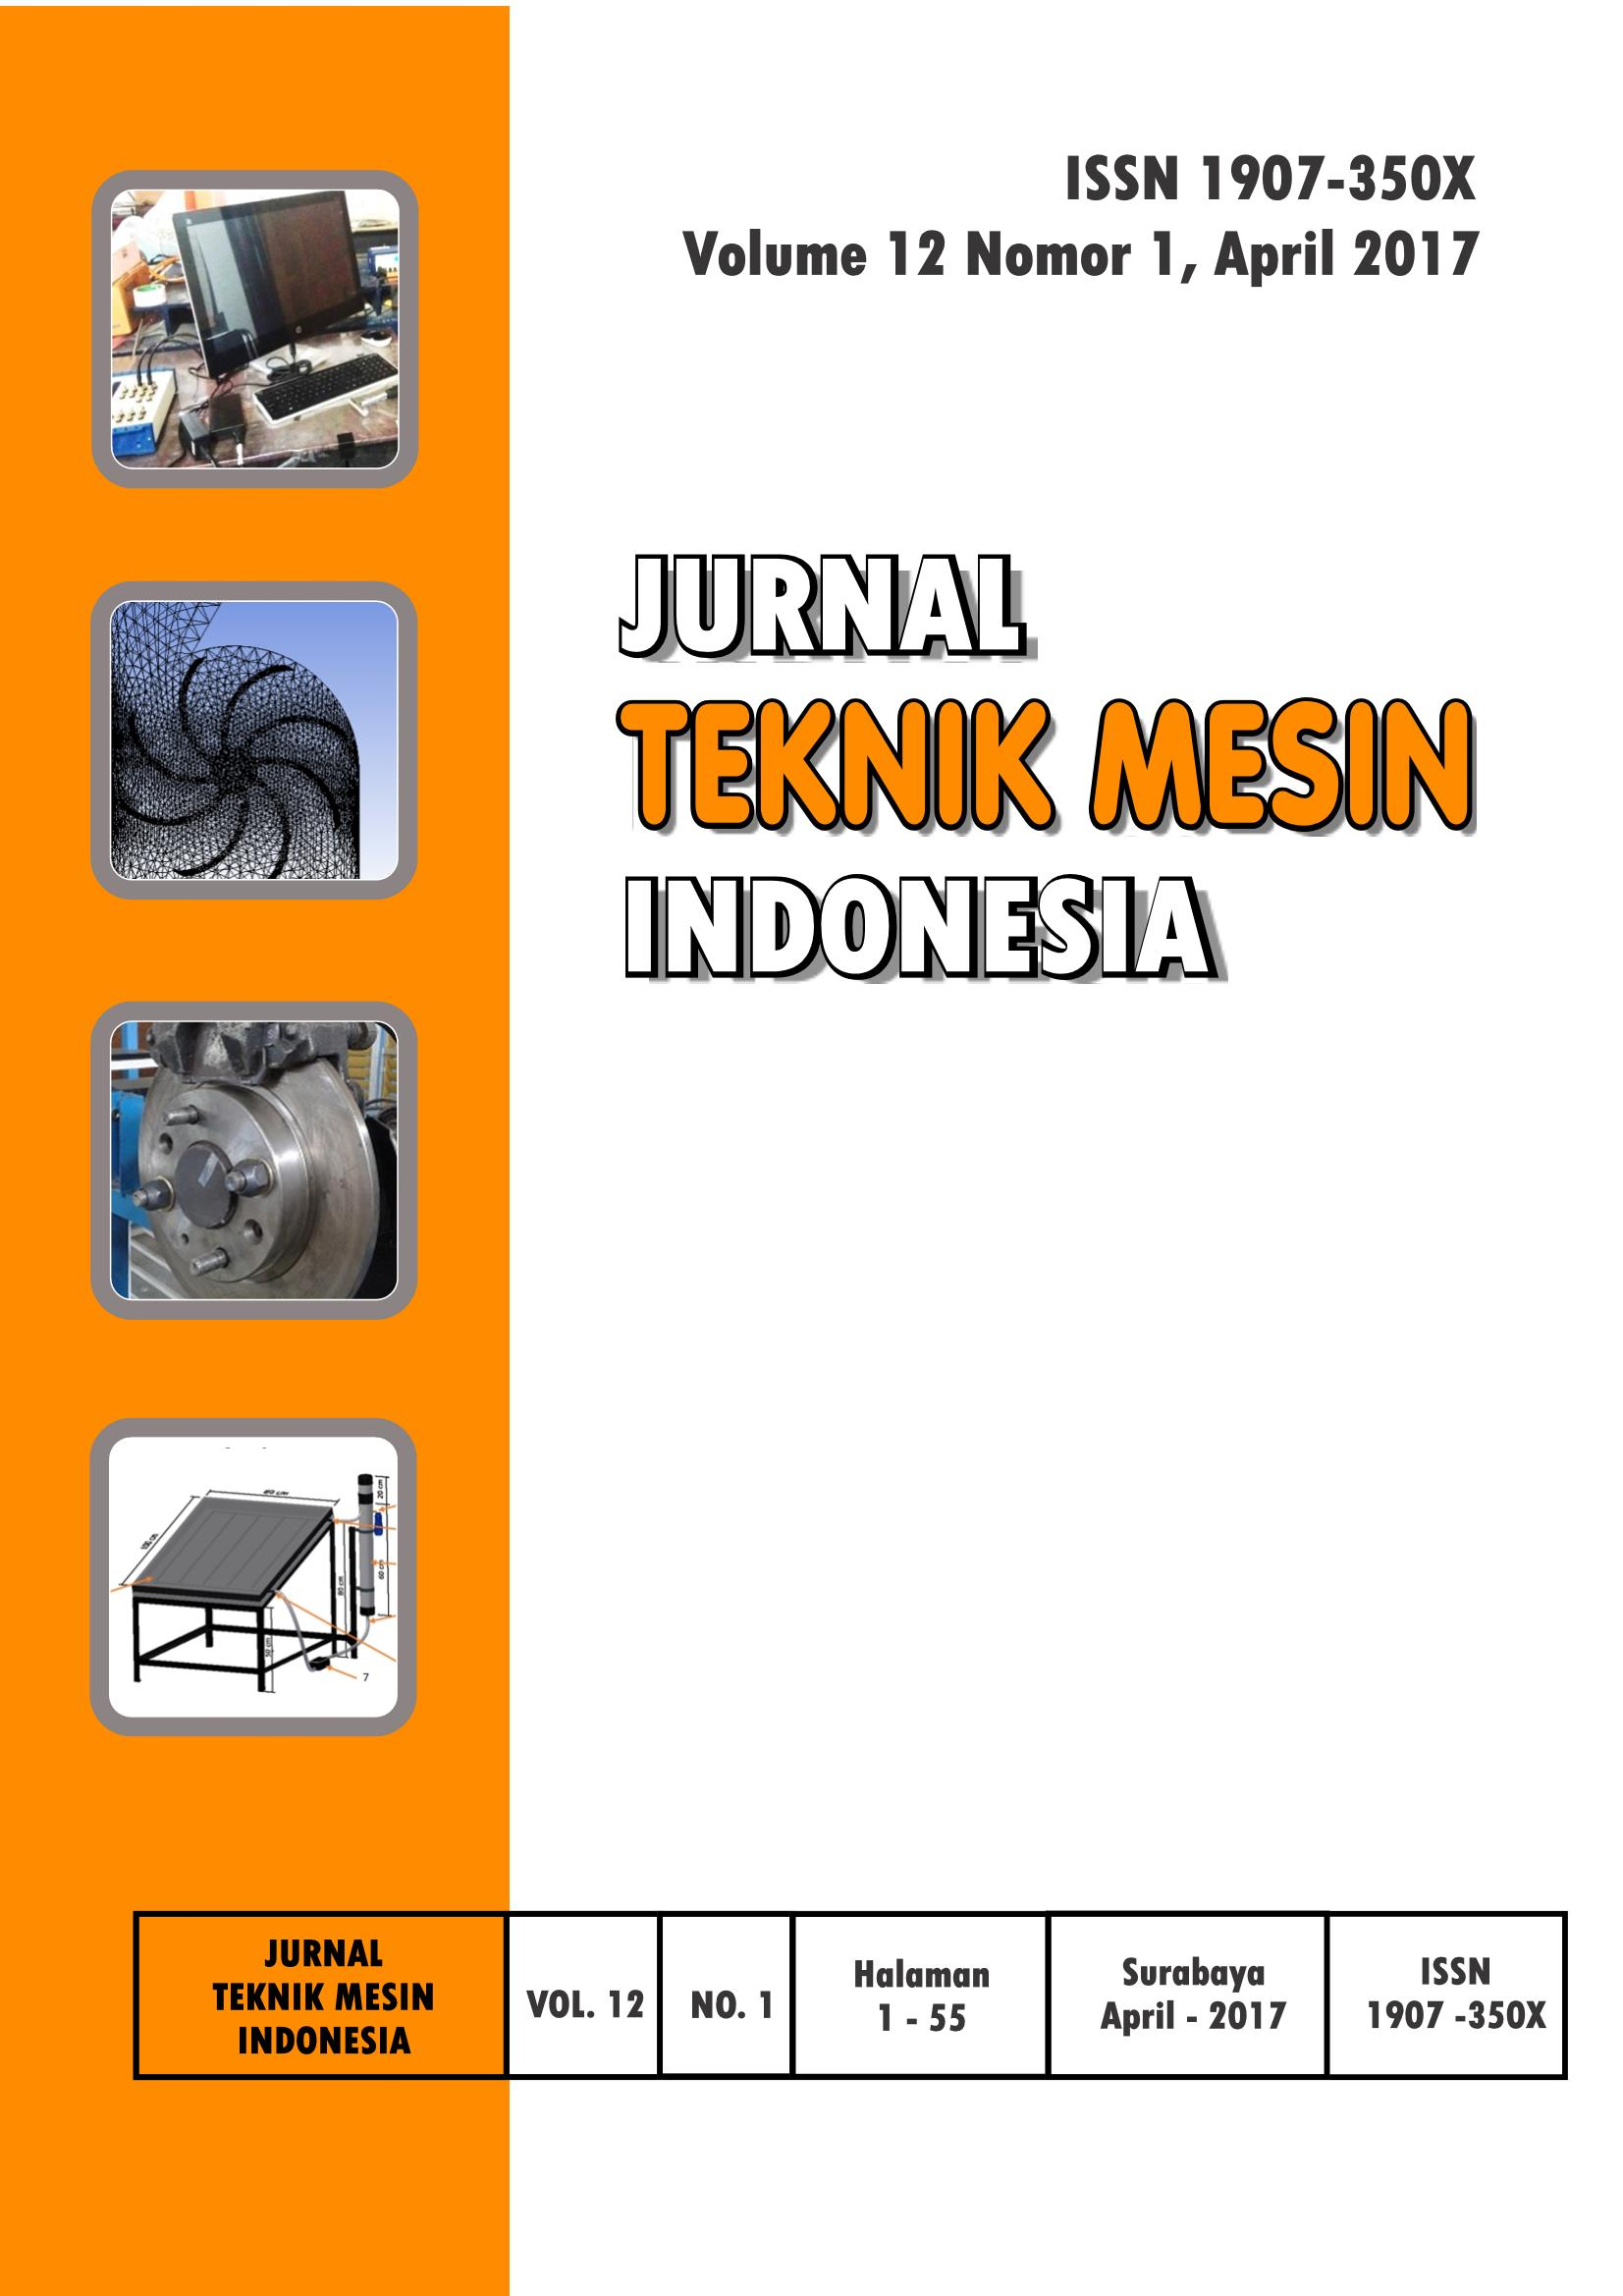 Jurnal Teknik Mesin Indonesia (JTMI) Edisi April 2017